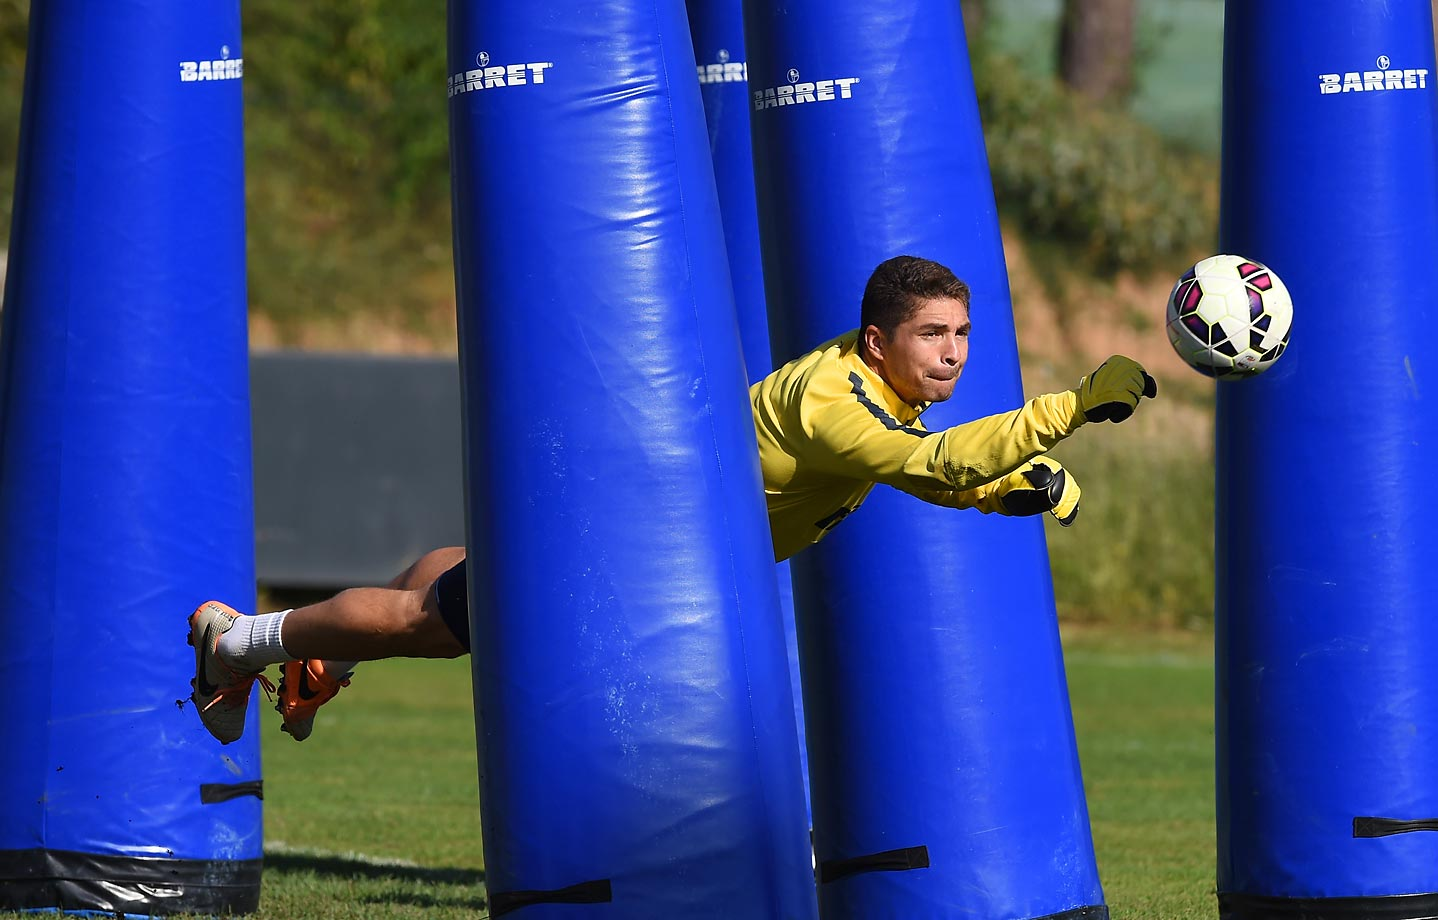 Juan Pablo Carrizo in training at Appiano Gentile in Como, Italy.